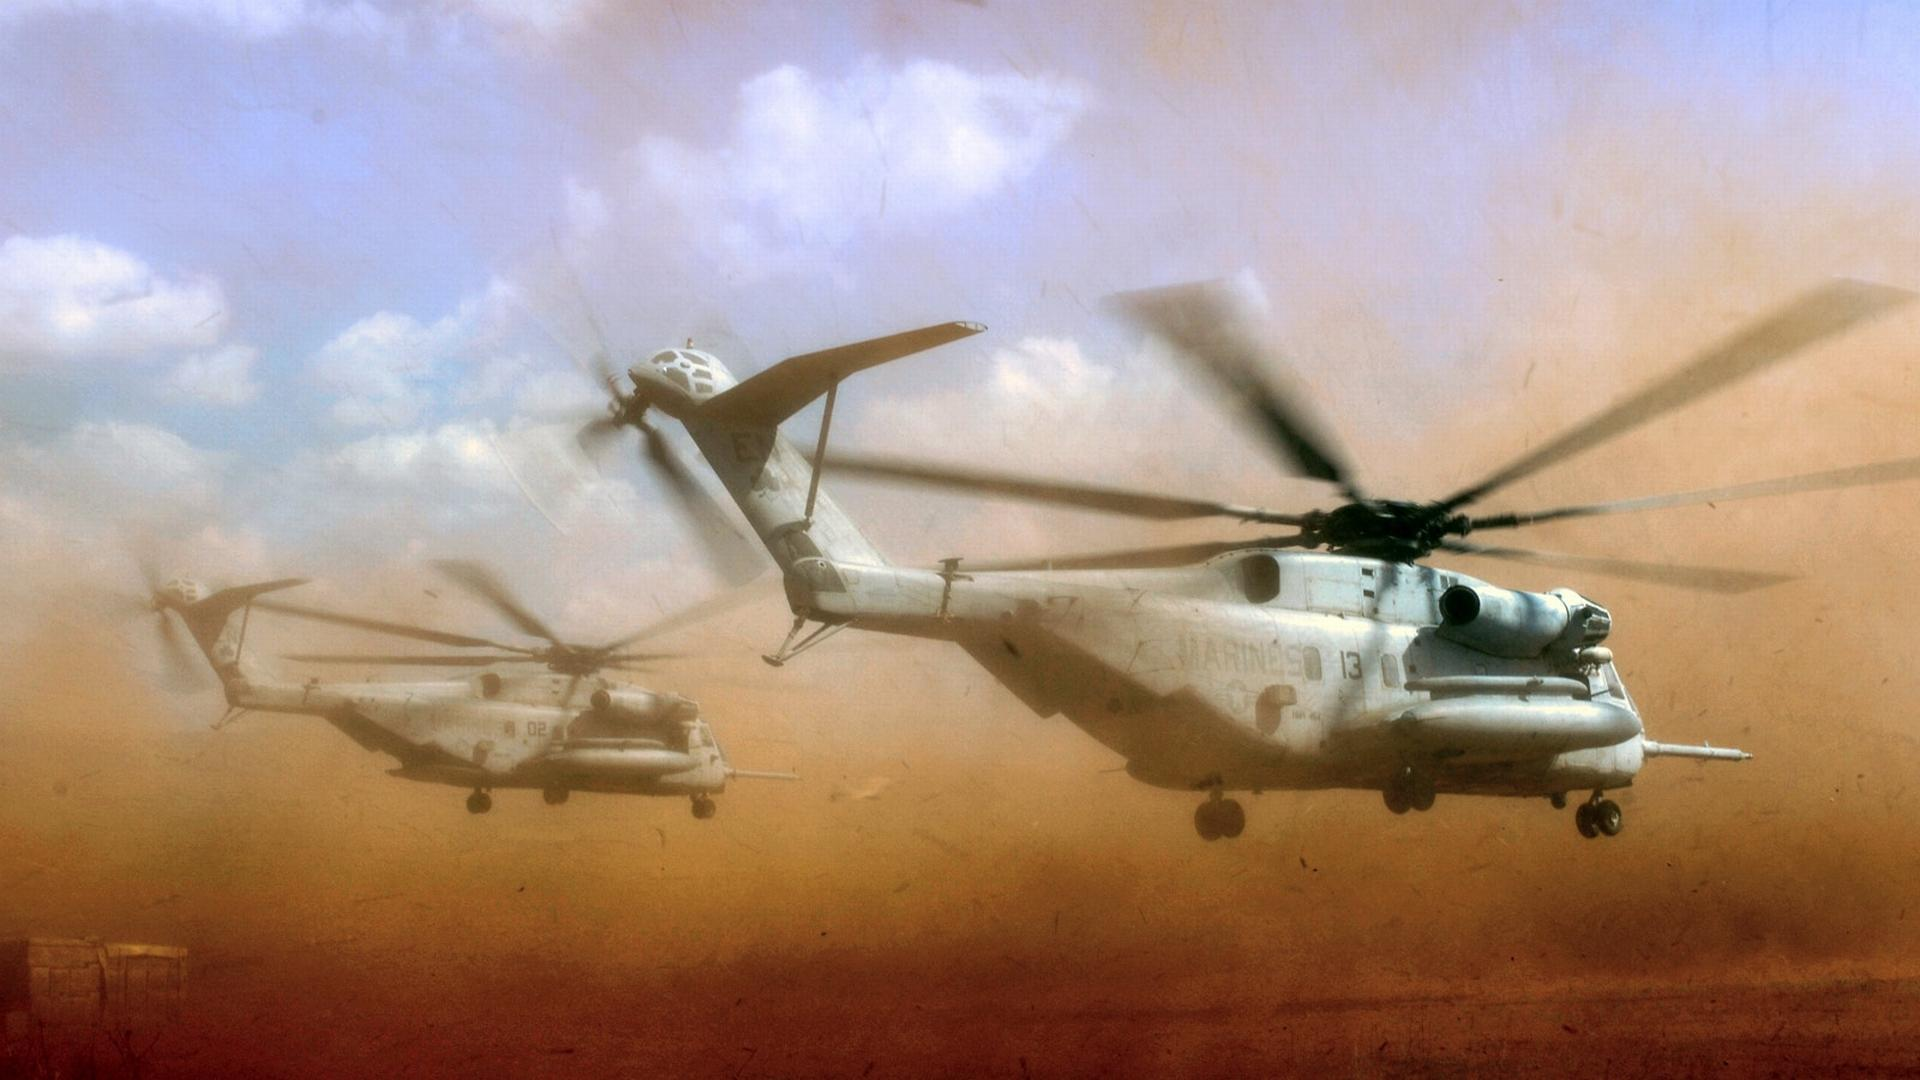 Sikorsky CH-53E Super Stallion wallpapers HD quality